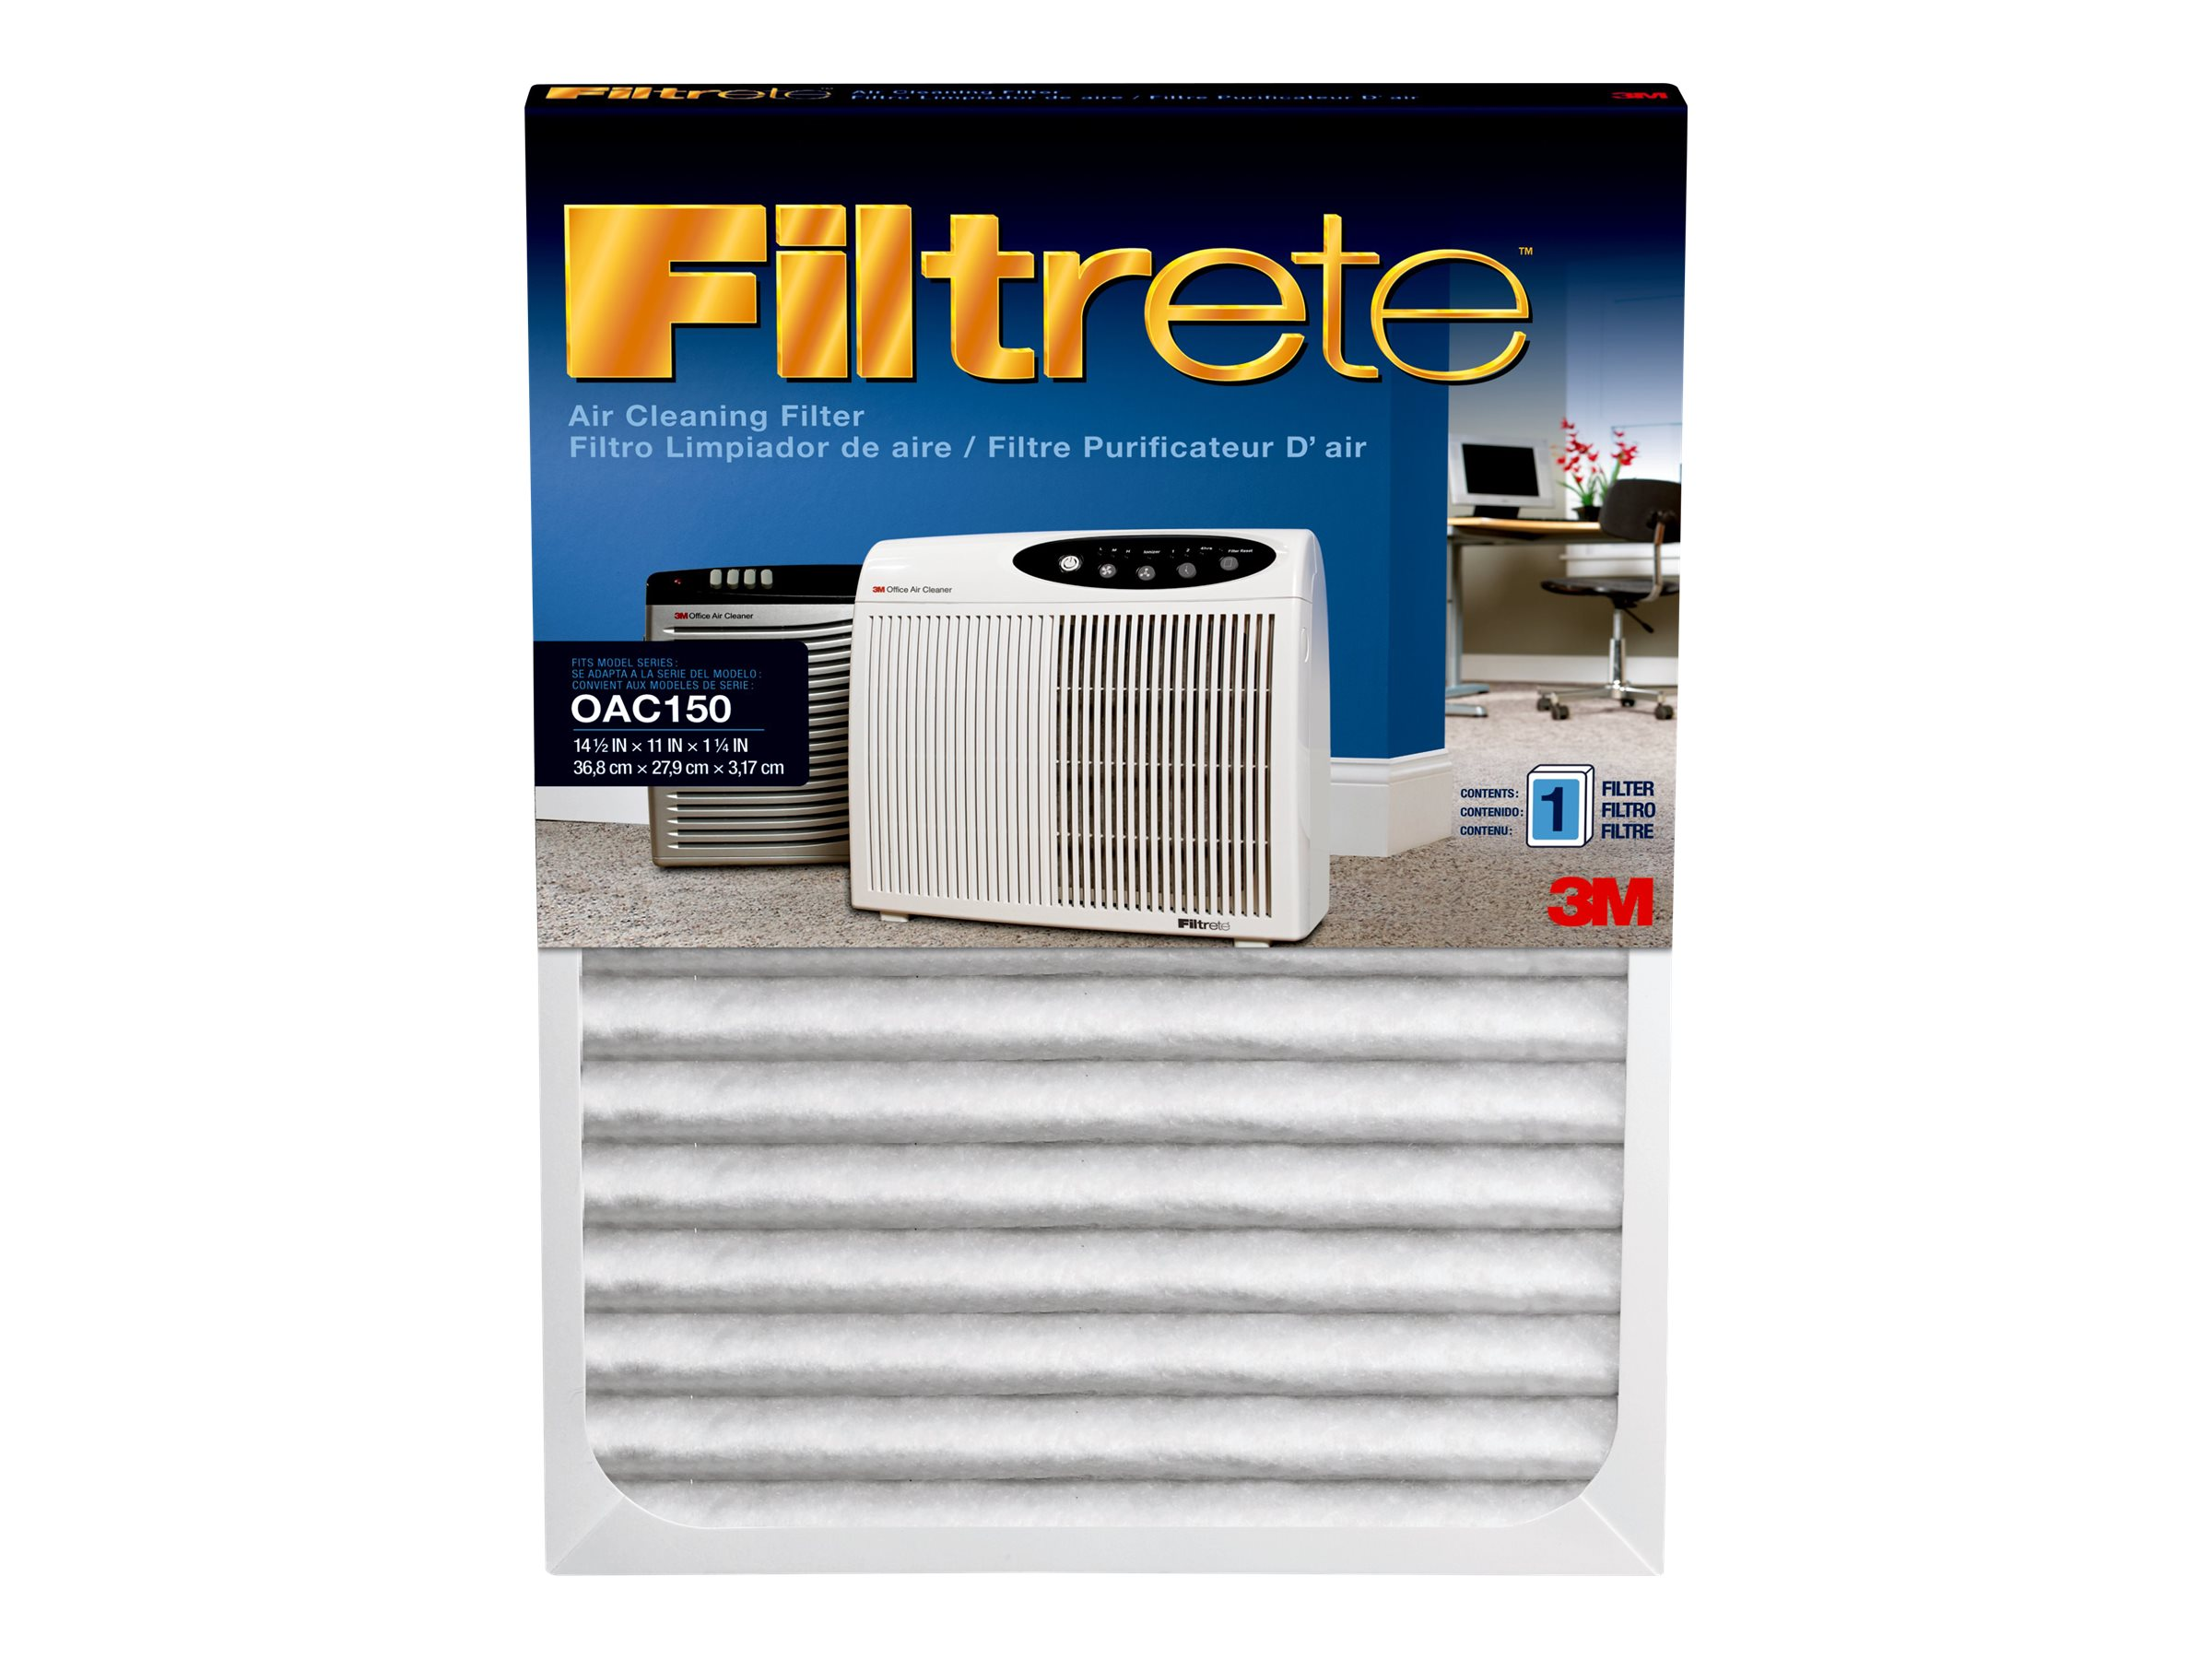 Image for 3M Filtrete - Filter from Circuit City